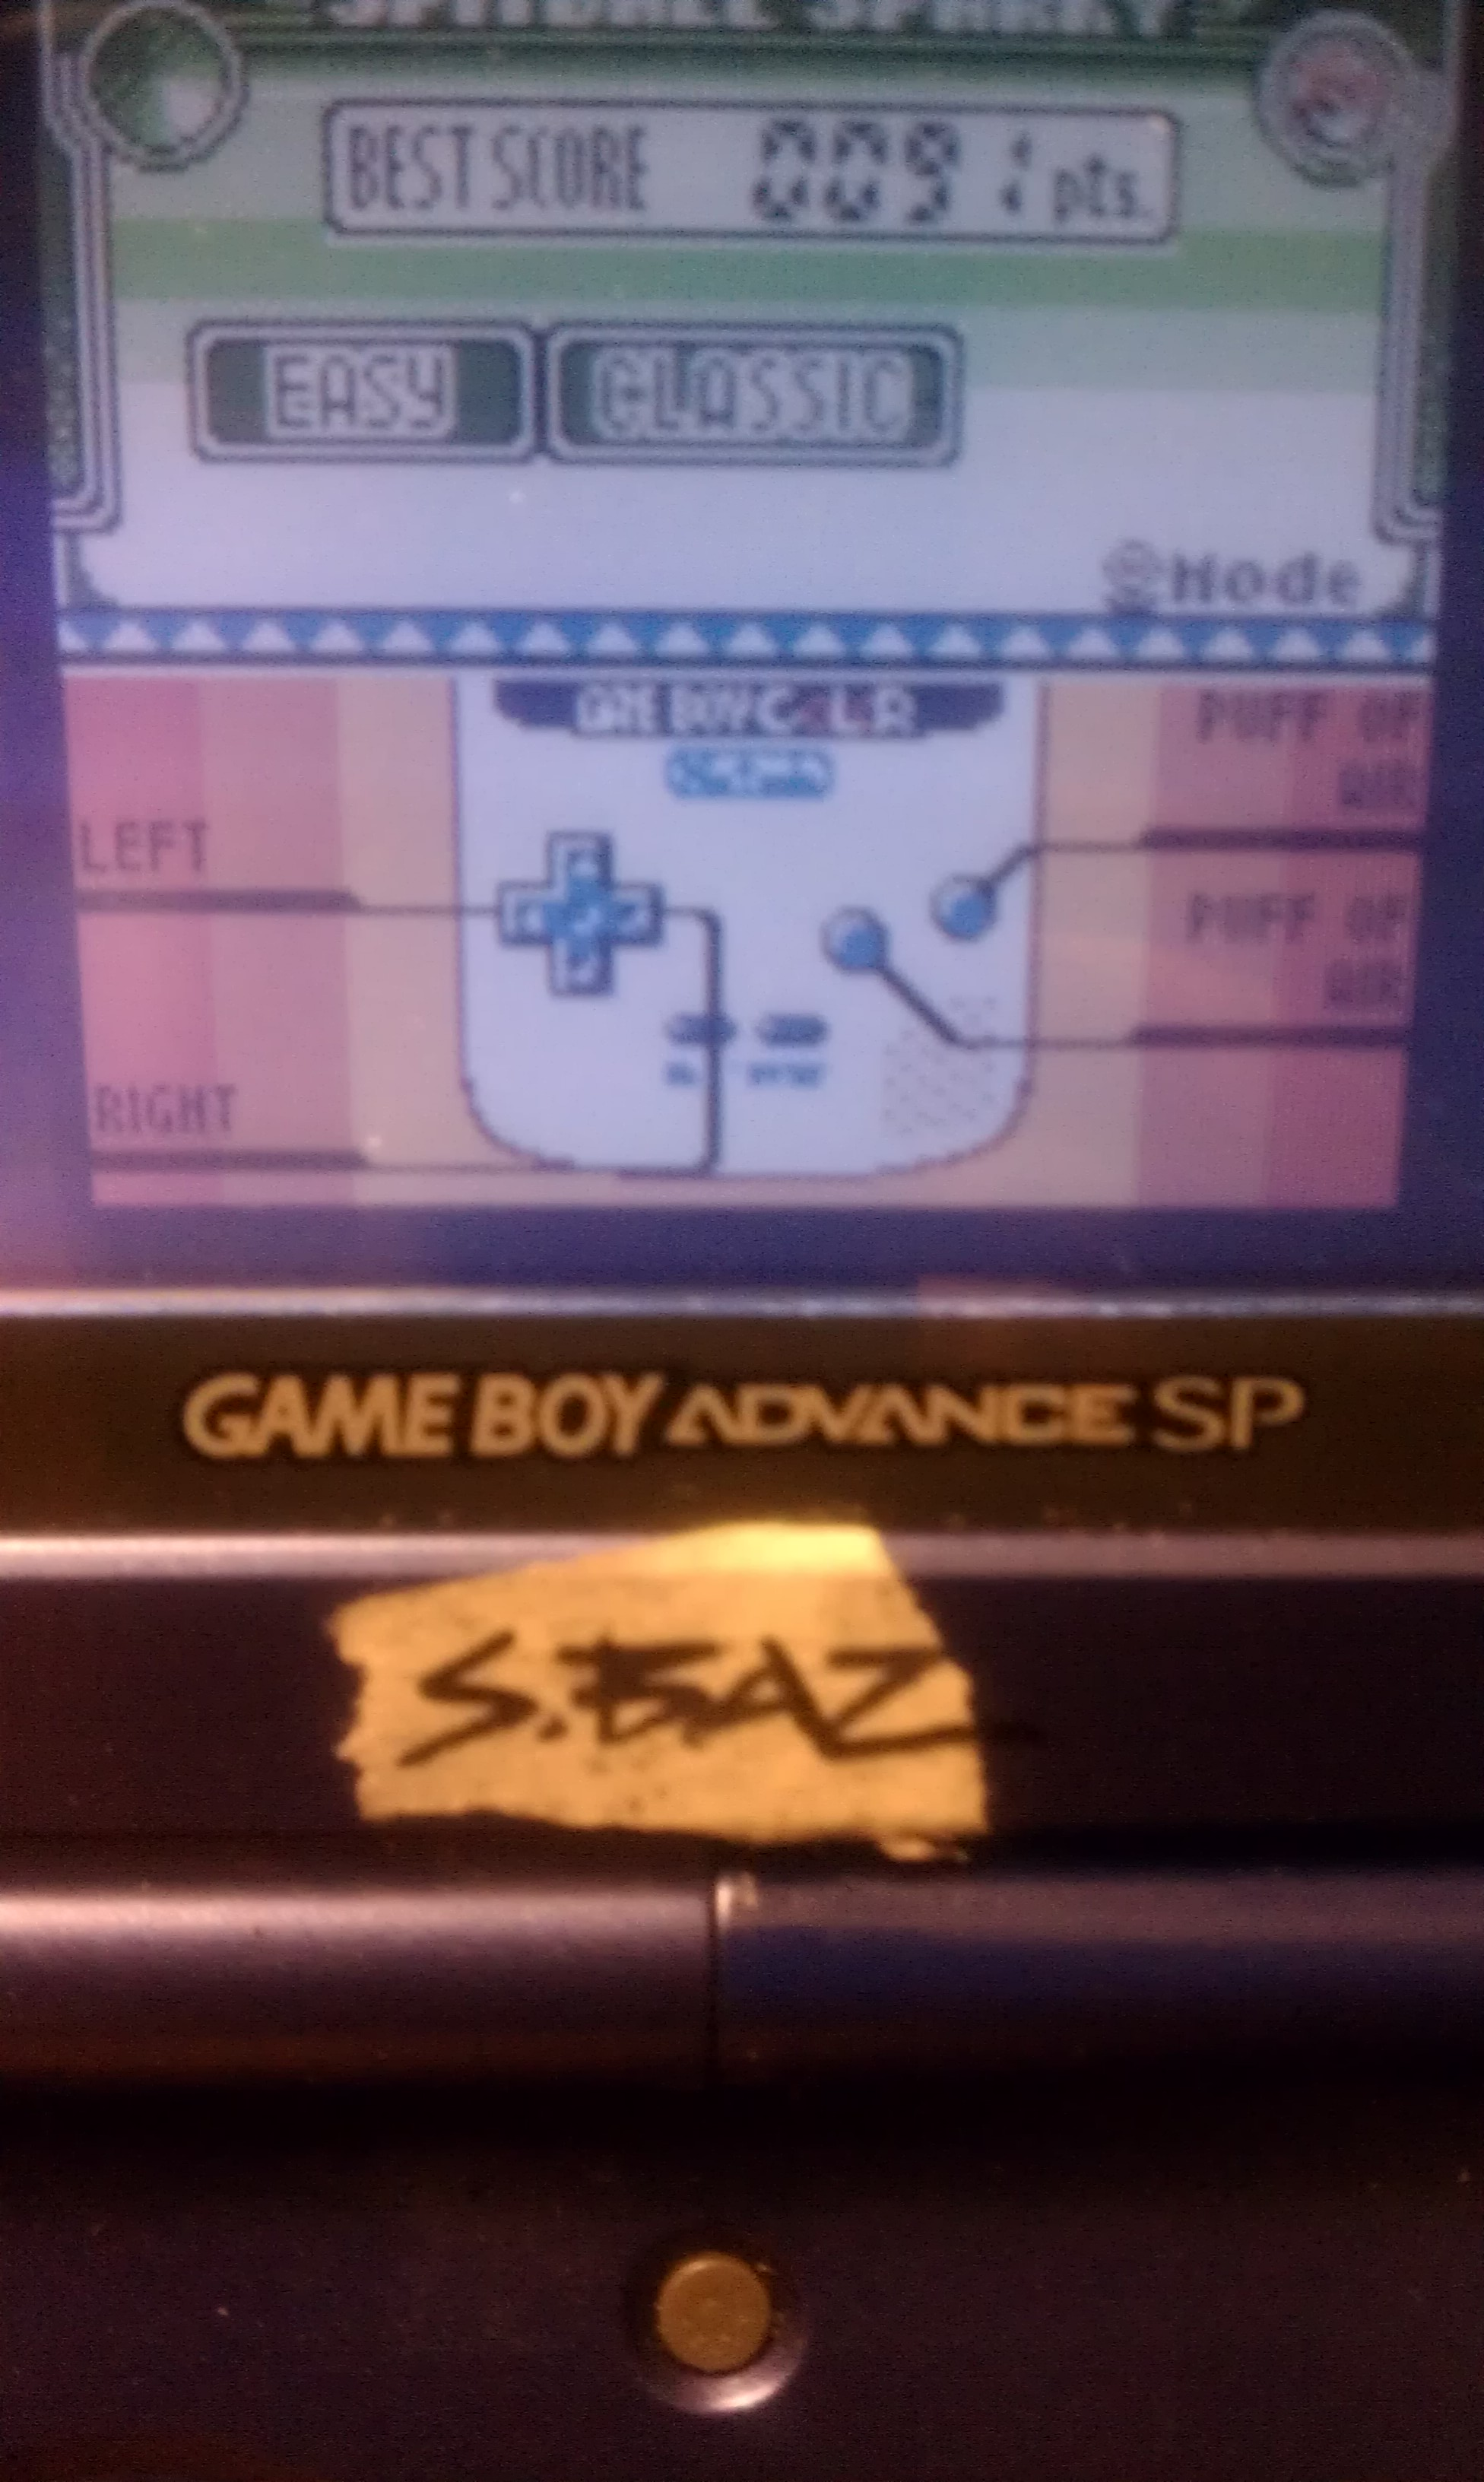 S.BAZ: Game & Watch Gallery 3: Spitball Sparky [Classic: Easy] (Game Boy Color) 91 points on 2018-08-24 14:53:12